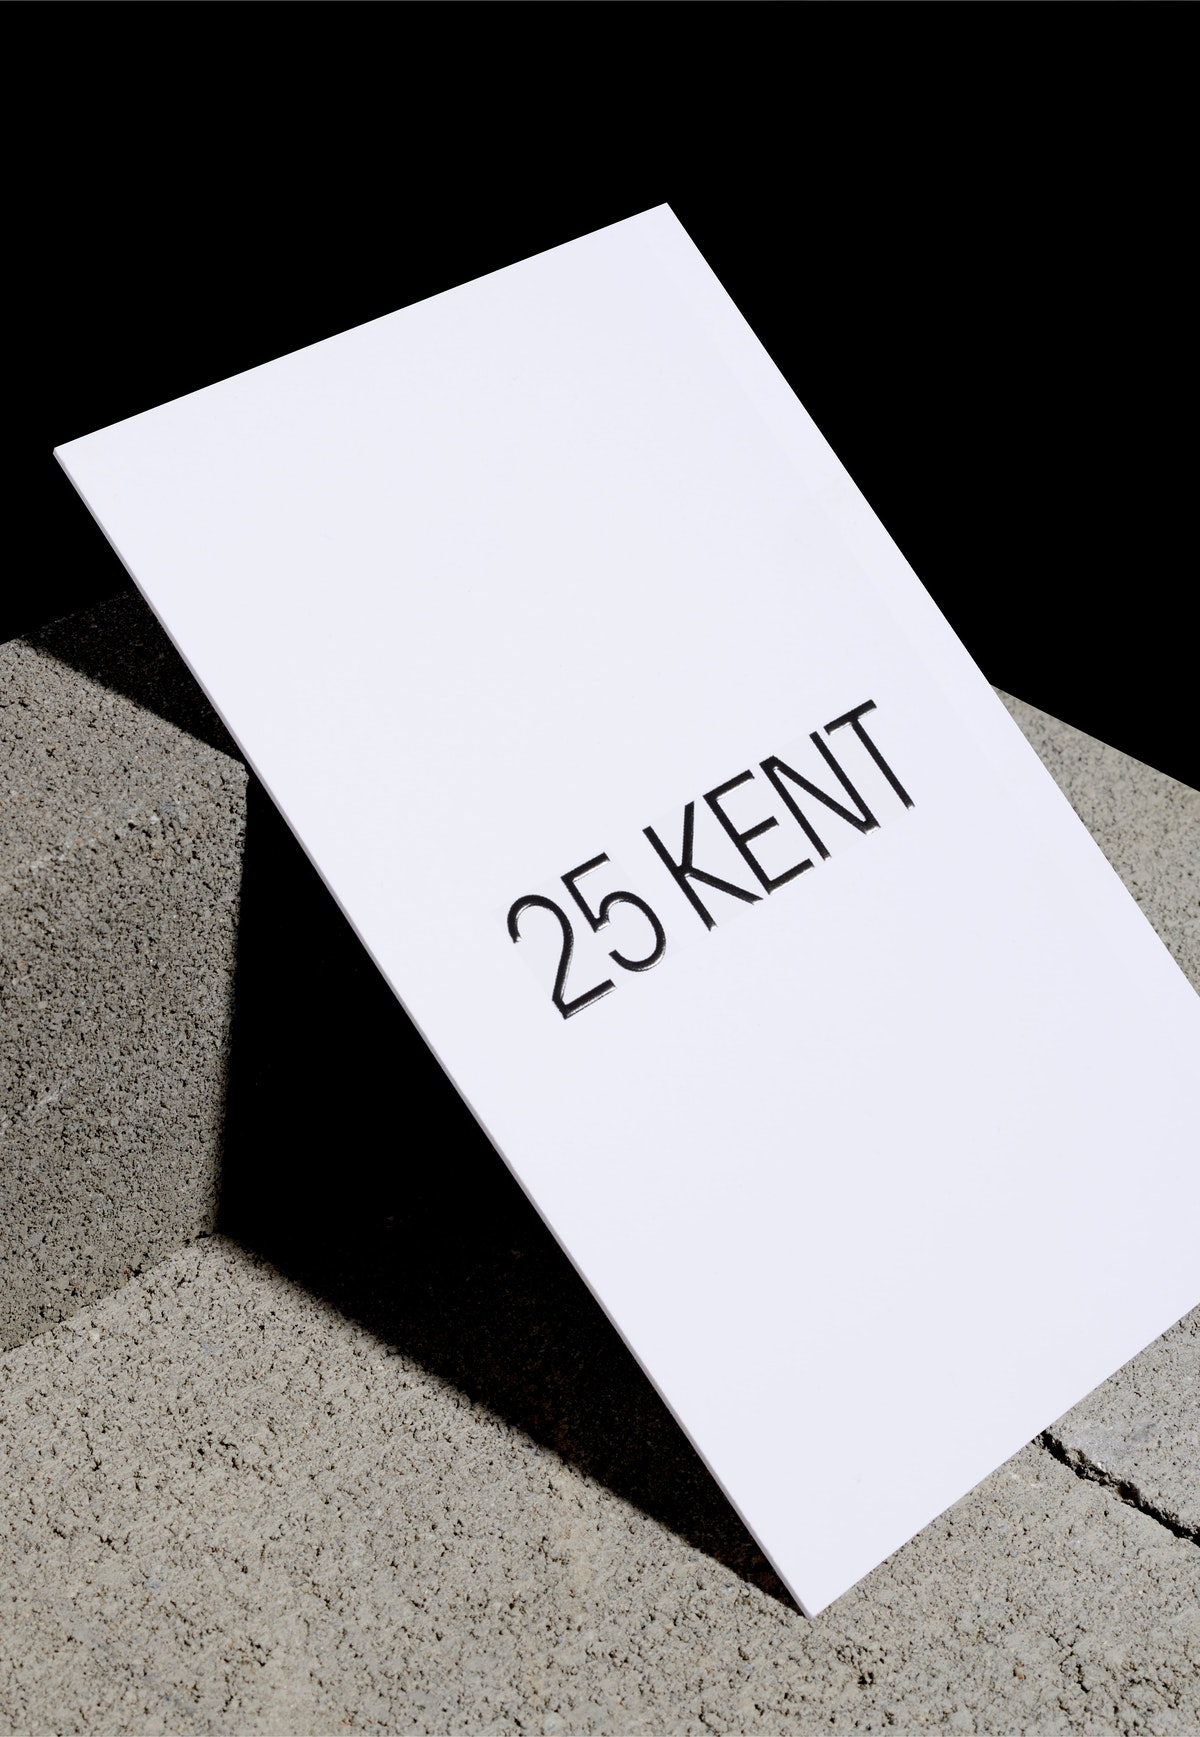 Feature: 25 KENT on The Brand Identity